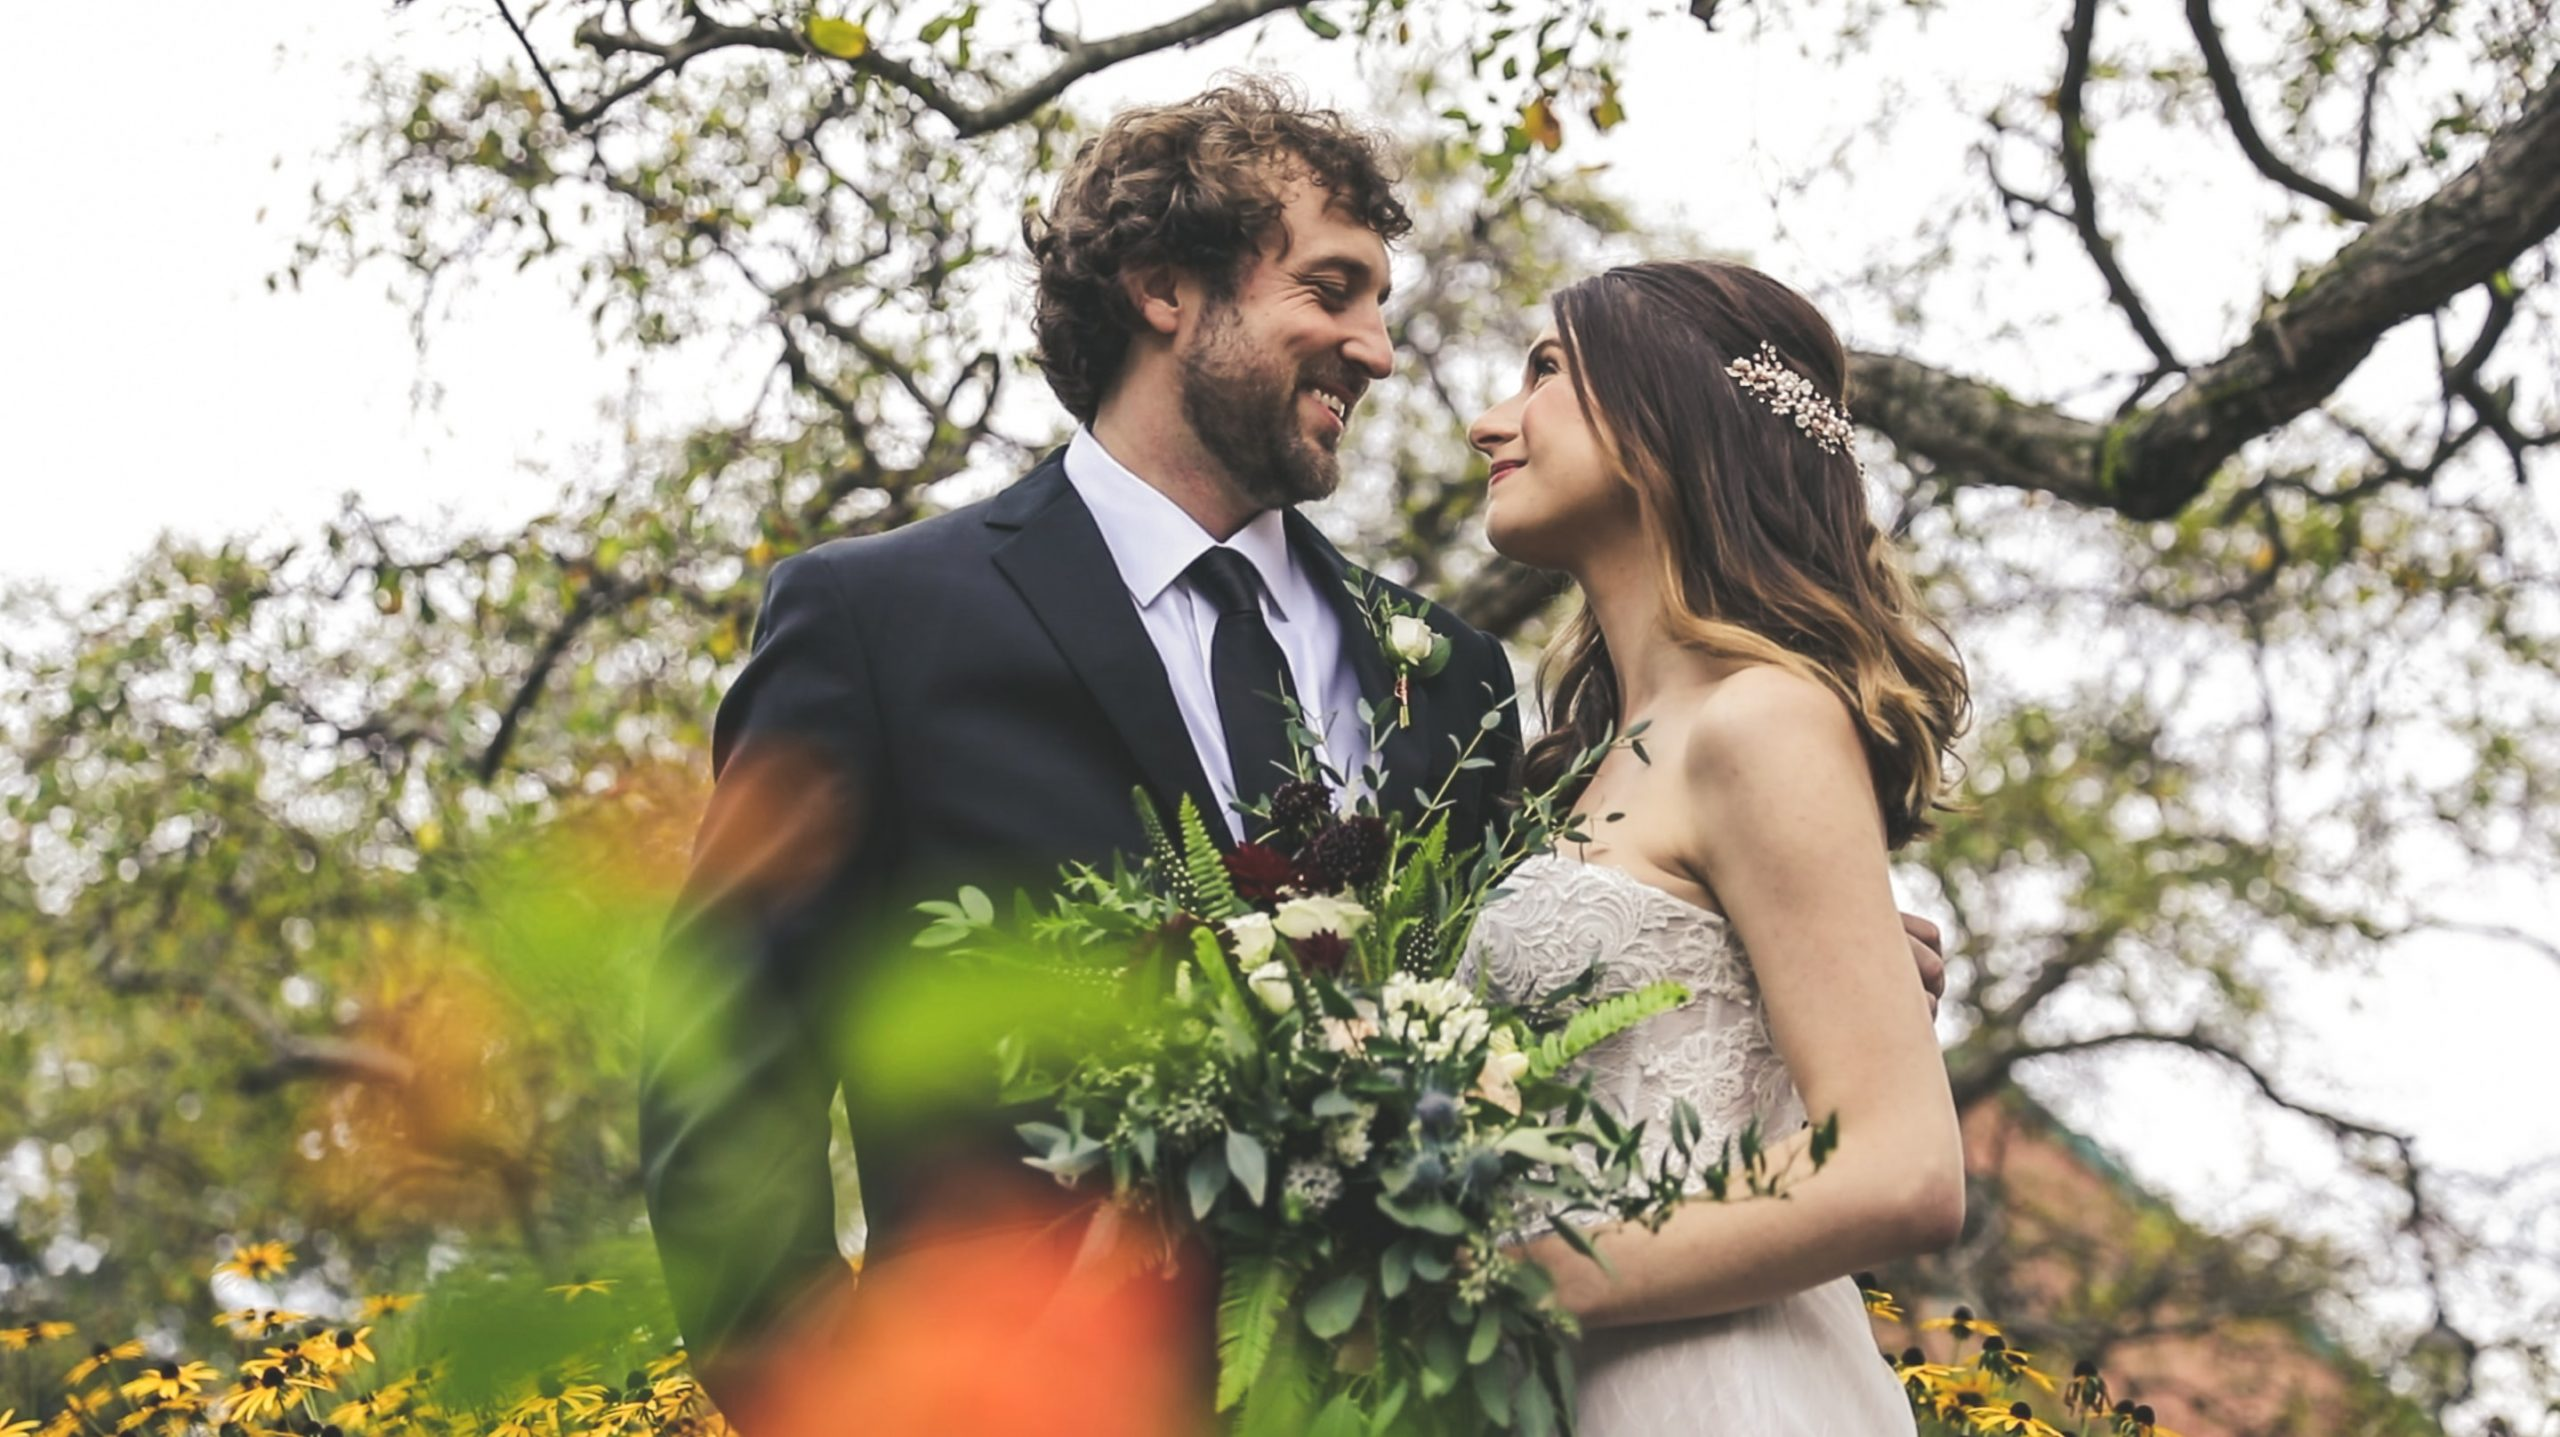 bride and groom in a garden setting